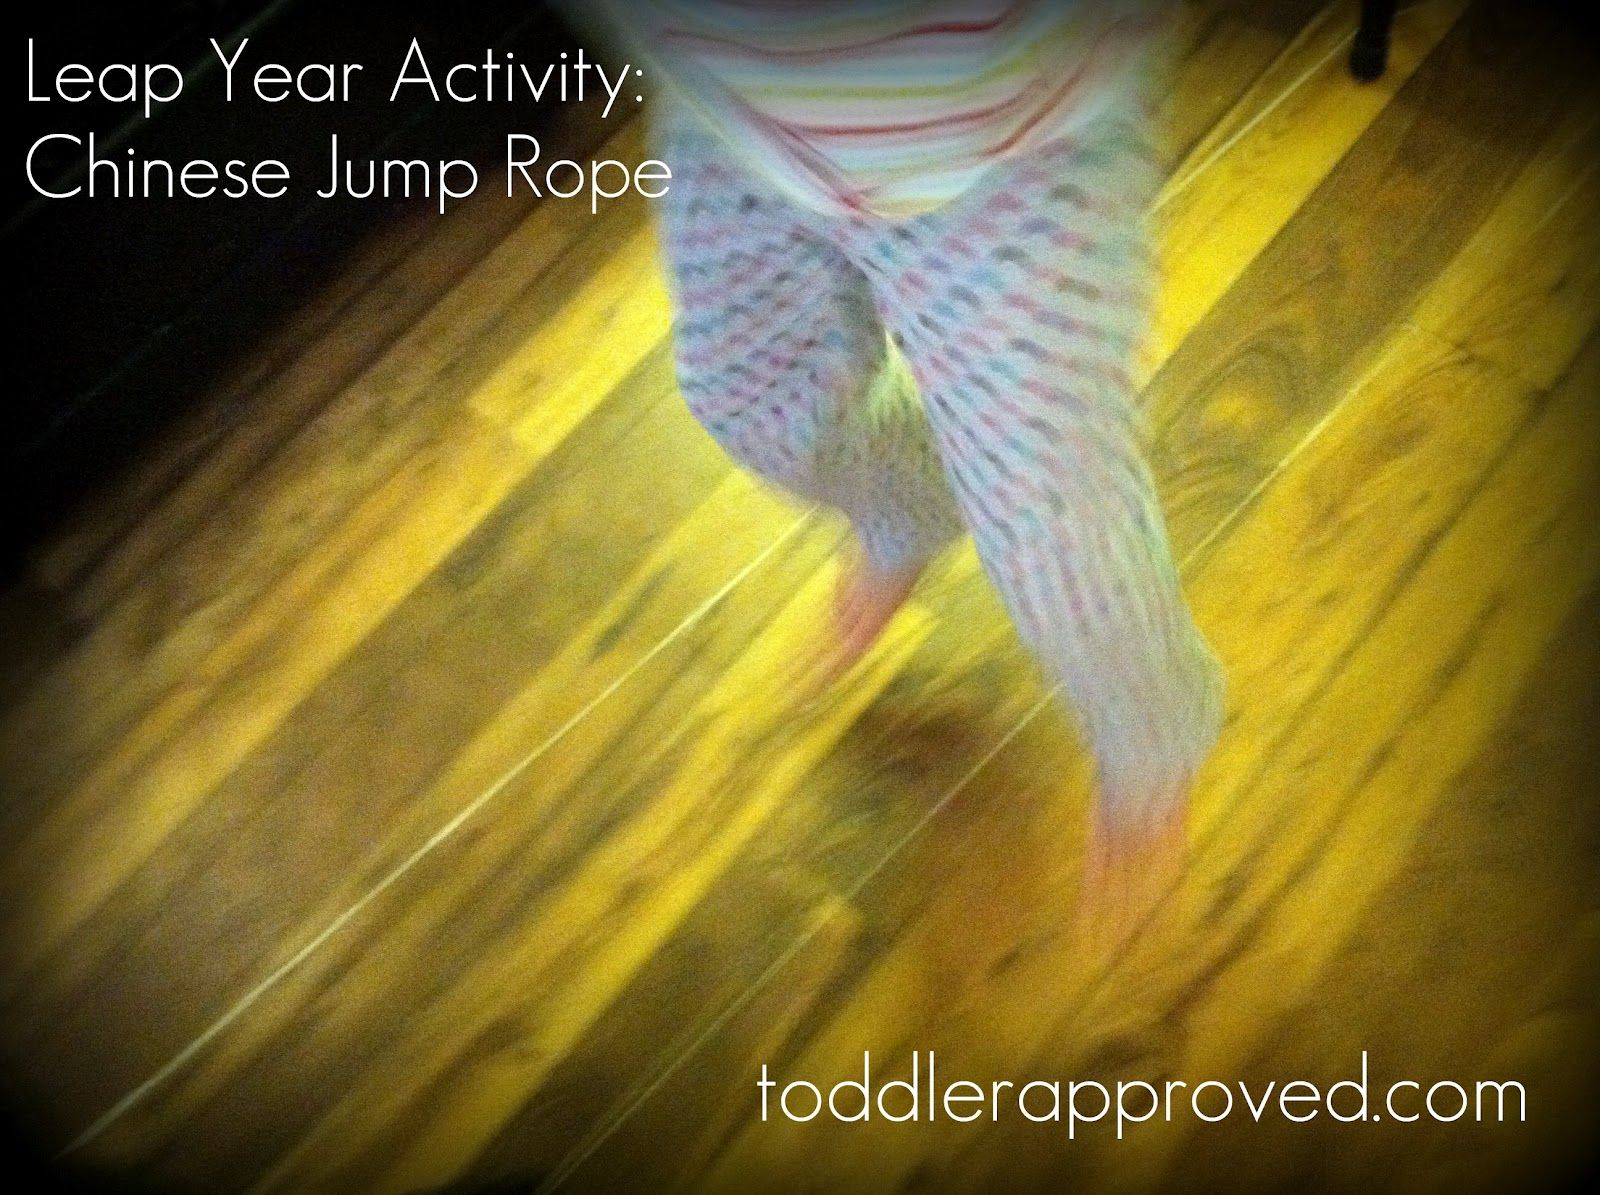 Chinese Jump Rope Active Game For Leap Year Toddler